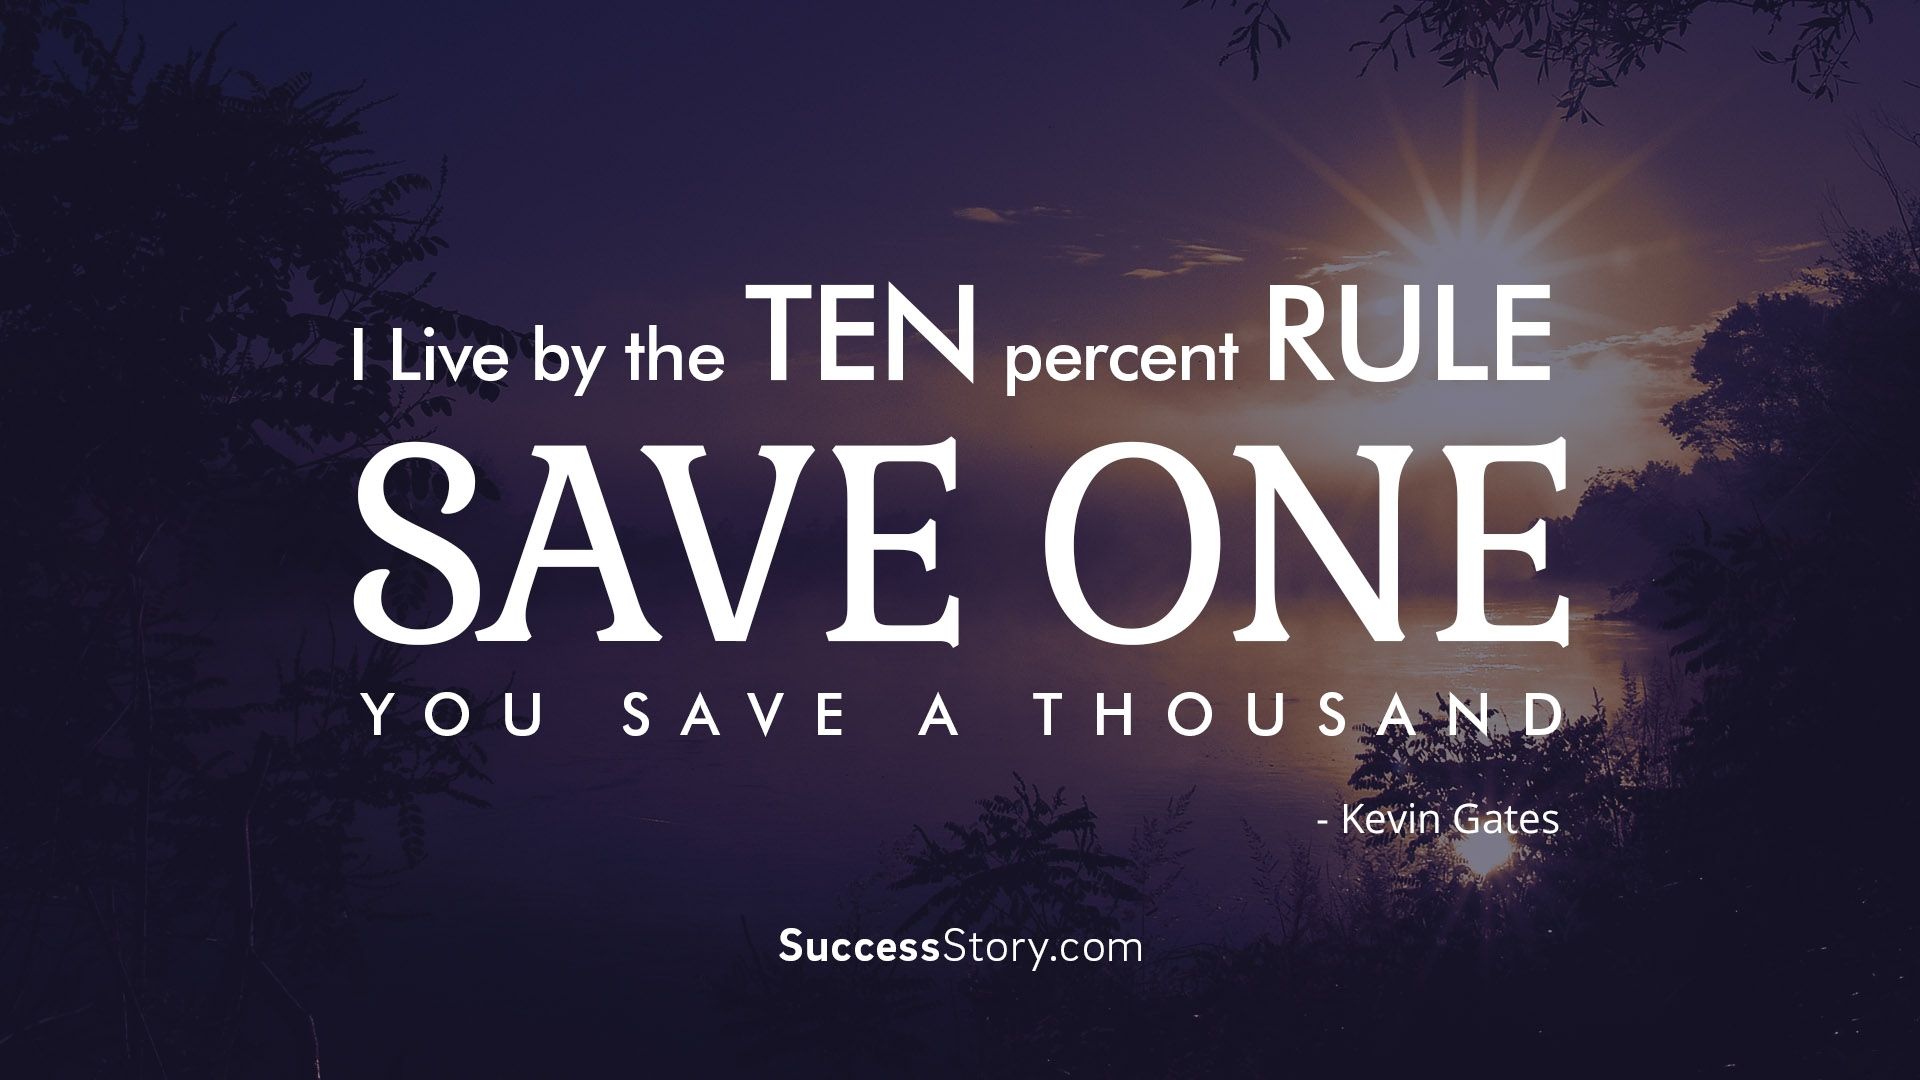 I live by the ten percent rule